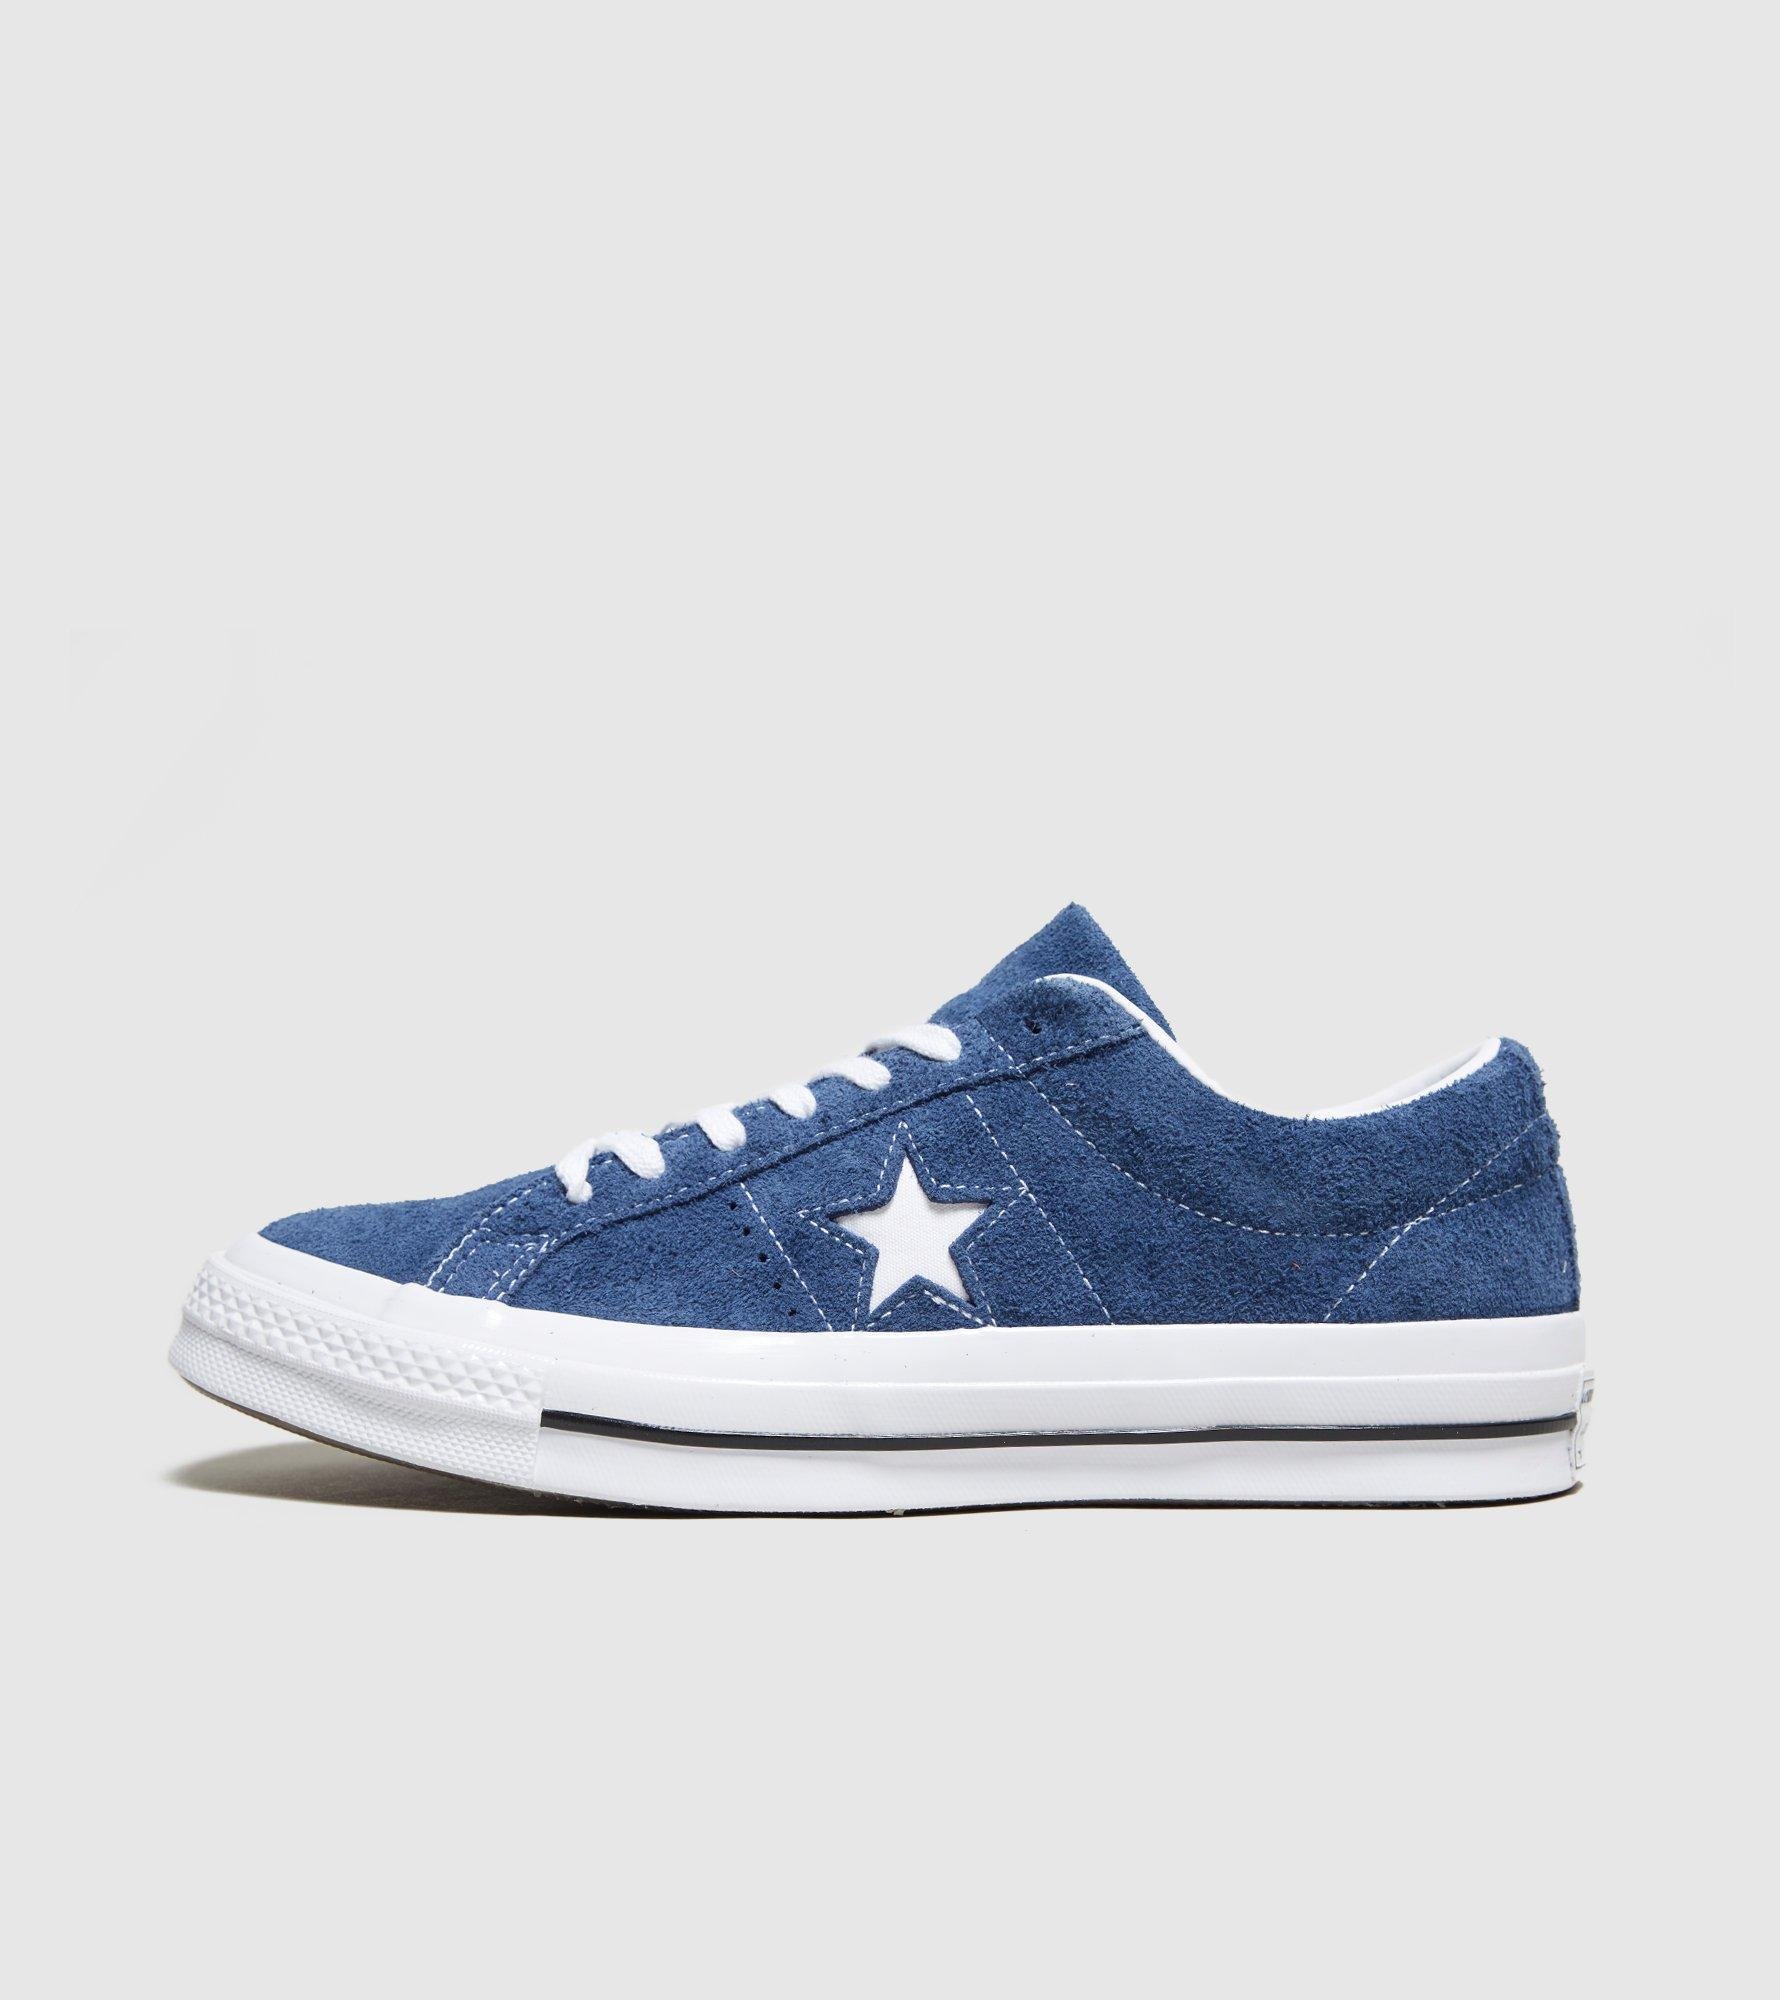 c786a00846d7 Lyst - Converse One Star Suede in Blue for Men